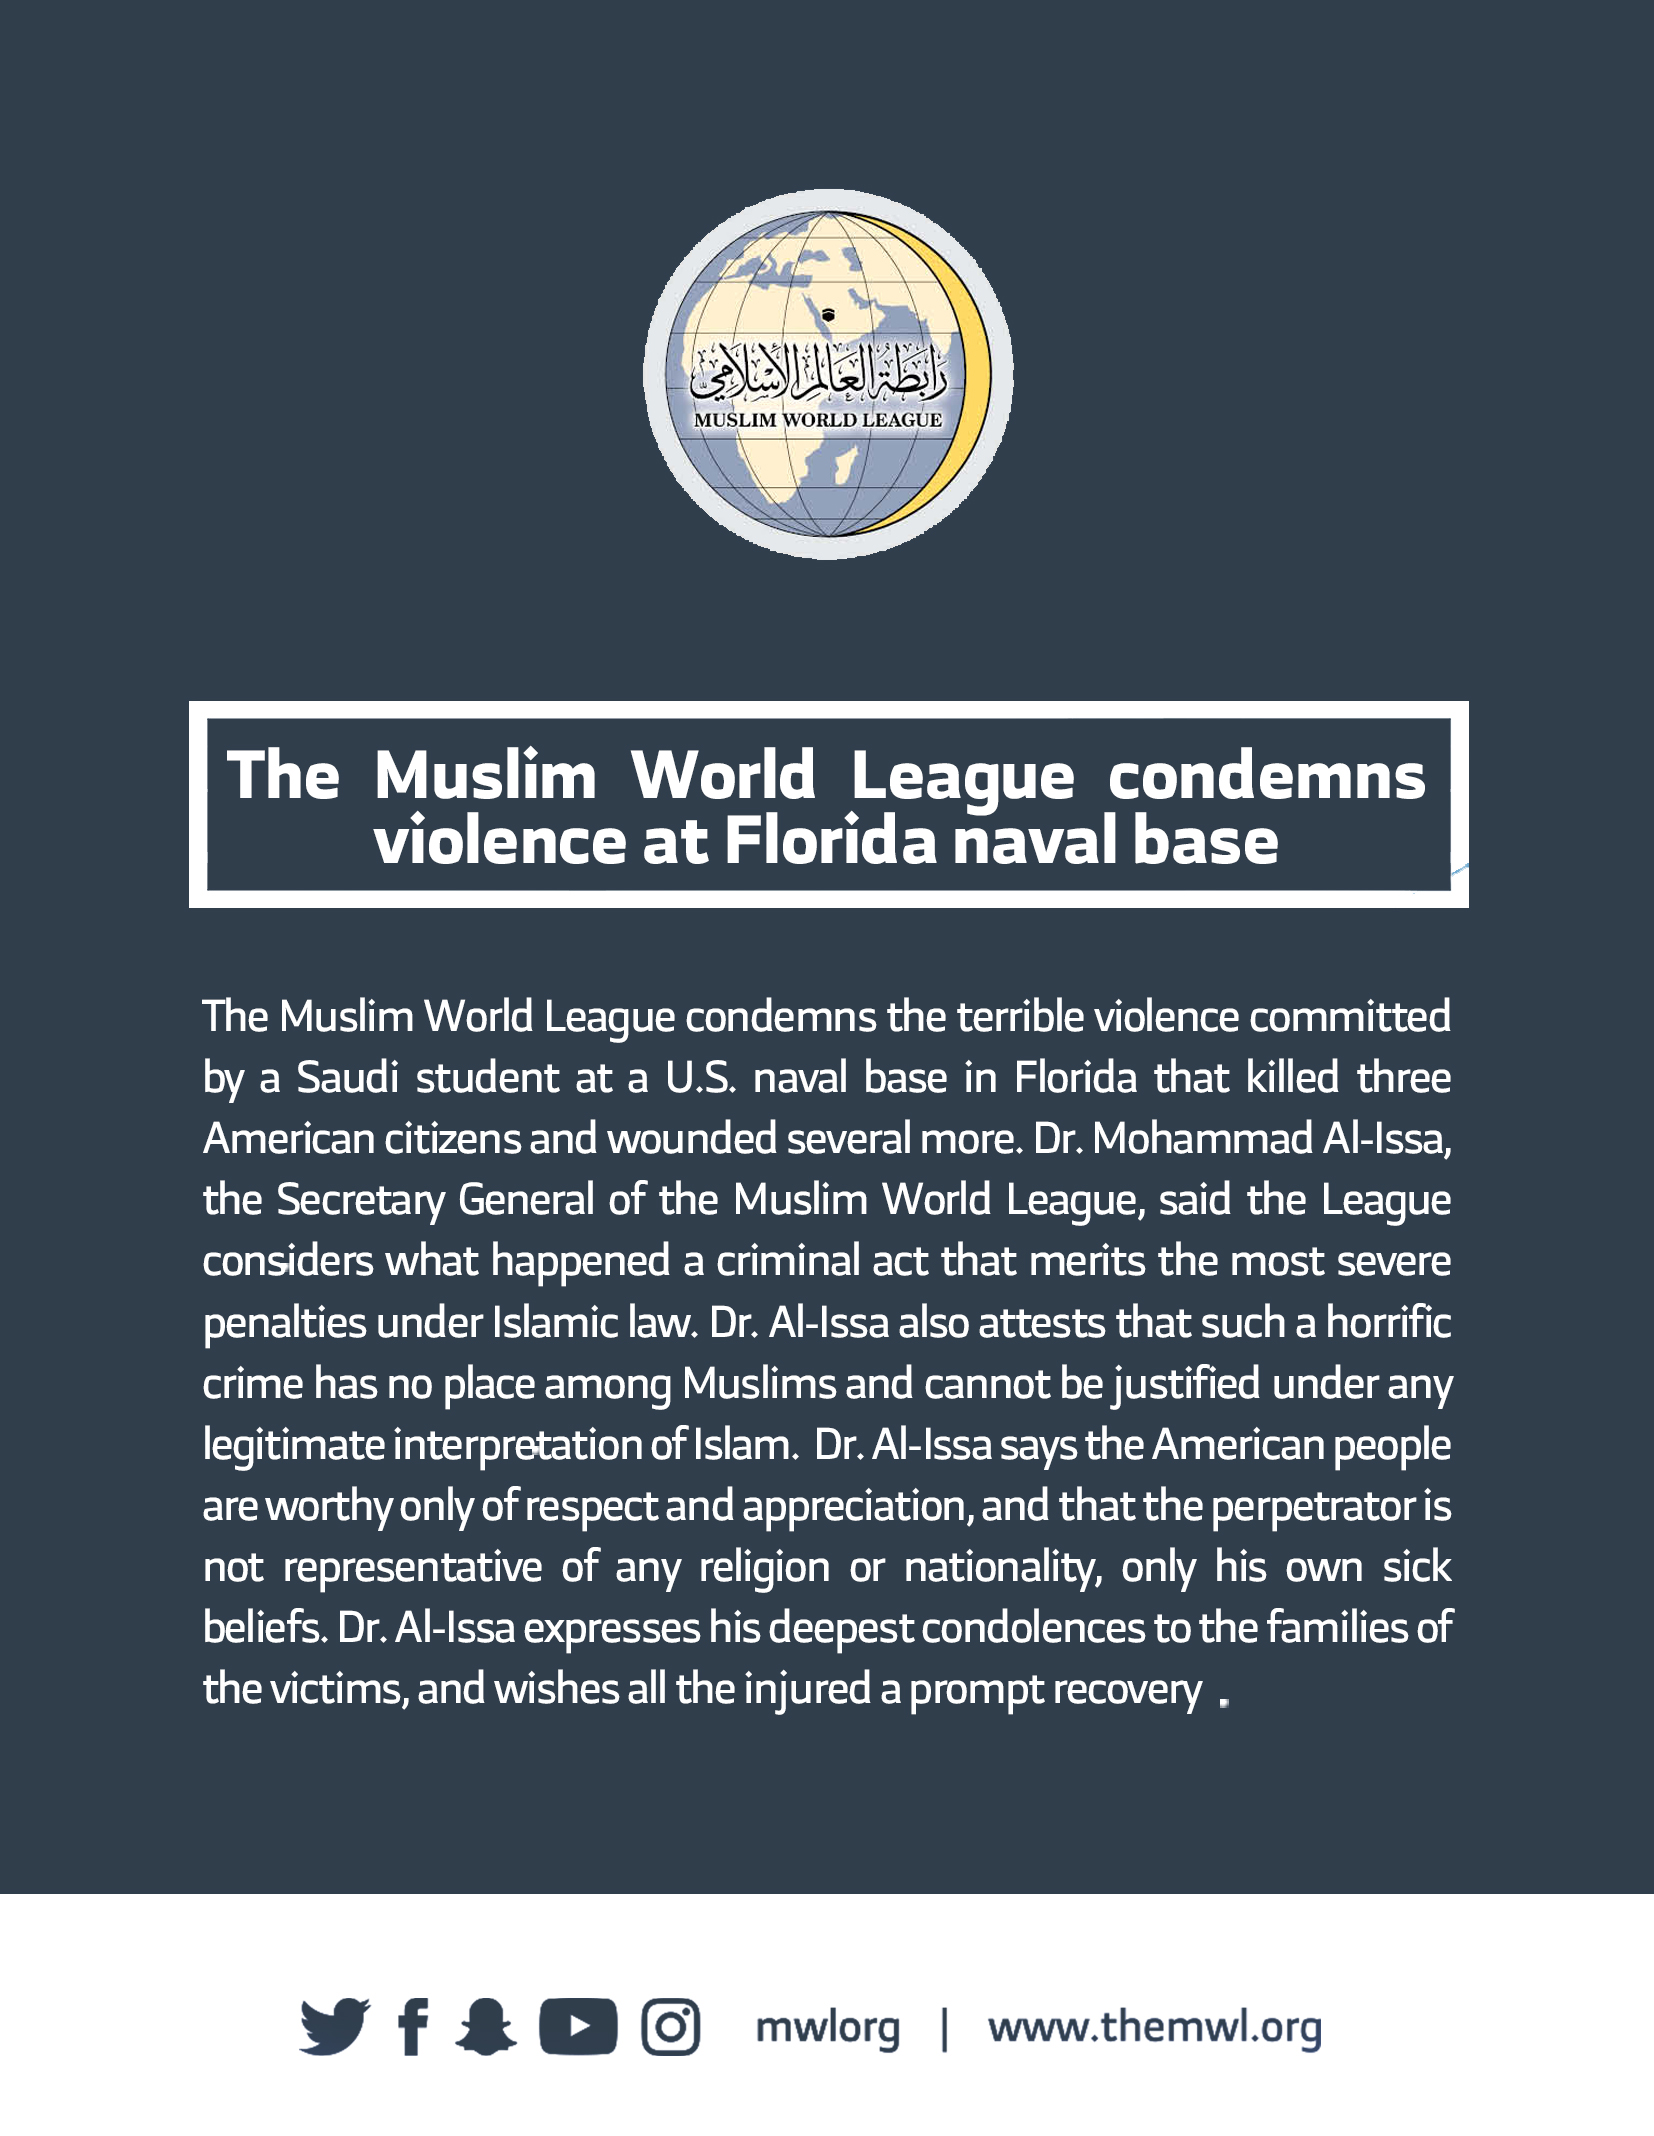 The Muslim World League condemns the terrible violence committed by a Saudi student at a U.S. naval base in Florida that killed three American citizens and wounded several more. Dr. Mohammad Al-Issa, the Secretary General of the Muslim World League, said the League considers what happened a criminal act that merits the most severe penalties under Islamic law. Dr. Al-Issa also attests that such a horrific crime has no place among Muslims and cannot be justified under any legitimate interpretation of Islam.